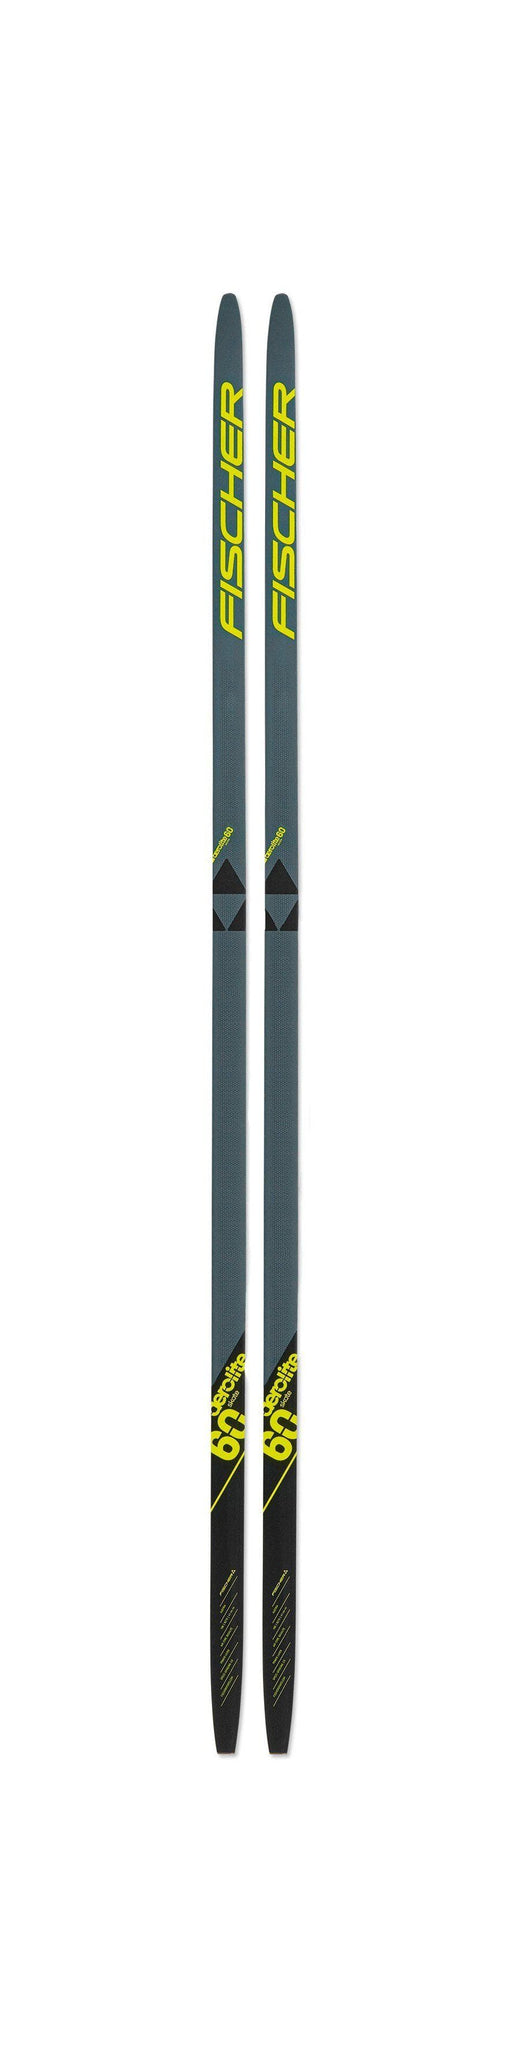 Fischer Fibre Crown EF Nordic Skis with Step-In IFP Bindings